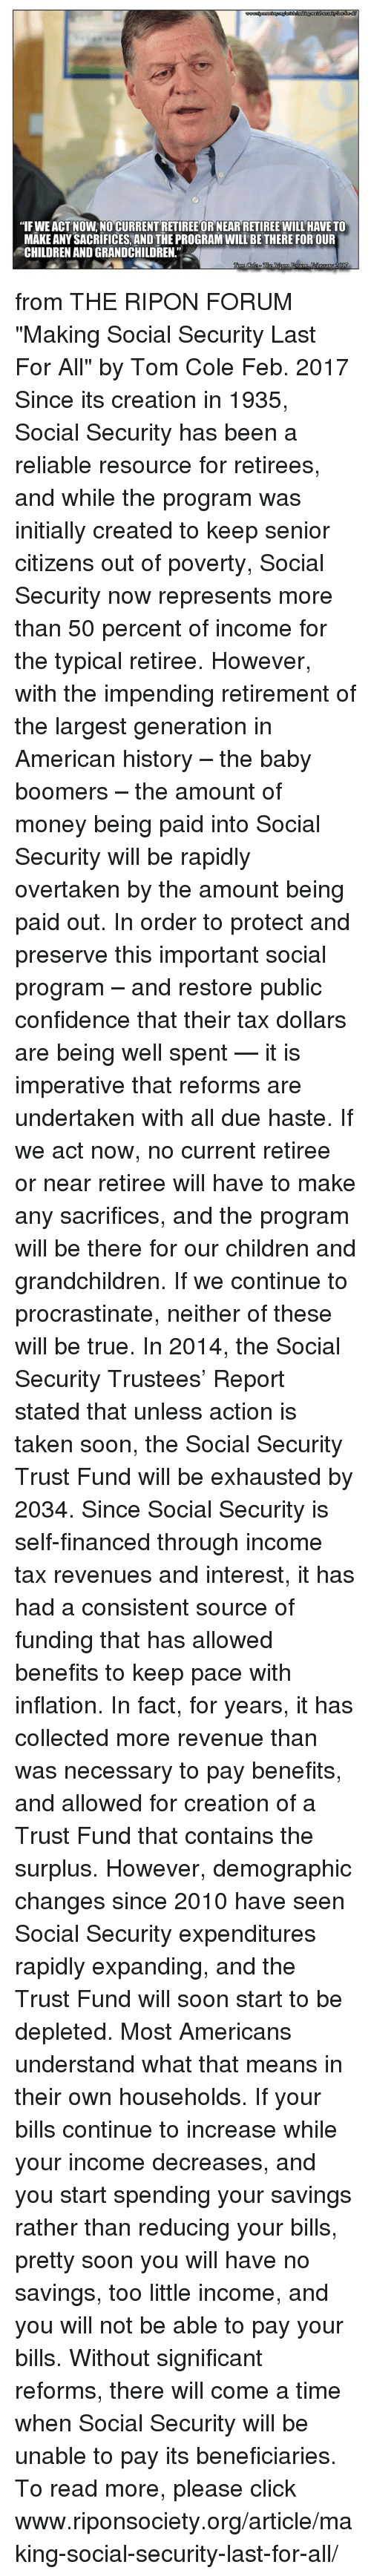 "Children, Click, and Confidence: ""IFWEACT NOW NO CURRENTRETIREE OR NEARRETIREE WILL HAVE TO  MAKE ANY SACRIFICES, AND THE PROGRAM WILL BETHERE FOR OUR  CHILDRENANDGRANDCHILDREN""  Lorri from THE RIPON FORUM ""Making Social Security Last For All"" by Tom Cole Feb. 2017  Since its creation in 1935, Social Security has been a reliable resource for retirees, and while the program was initially created to keep senior citizens out of poverty, Social Security now represents more than 50 percent of income for the typical retiree.  However, with the impending retirement of the largest generation in American history – the baby boomers – the amount of money being paid into Social Security will be rapidly overtaken by the amount being paid out.  In order to protect and preserve this important social program – and restore public confidence that their tax dollars are being well spent — it is imperative that reforms are undertaken with all due haste. If we act now, no current retiree or near retiree will have to make any sacrifices, and the program will be there for our children and grandchildren. If we continue to procrastinate, neither of these will be true.  In 2014, the Social Security Trustees' Report stated that unless action is taken soon, the Social Security Trust Fund will be exhausted by 2034. Since Social Security is self-financed through income tax revenues and interest, it has had a consistent source of funding that has allowed benefits to keep pace with inflation. In fact, for years, it has collected more revenue than was necessary to pay benefits, and allowed for creation of a Trust Fund that contains the surplus.  However, demographic changes since 2010 have seen Social Security expenditures rapidly expanding, and the Trust Fund will soon start to be depleted.  Most Americans understand what that means in their own households. If your bills continue to increase while your income decreases, and you start spending your savings rather than reducing your bills, pretty soon you will have no savings, too little income, and you will not be able to pay your bills. Without significant reforms, there will come a time when Social Security will be unable to pay its beneficiaries.  To read more, please click www.riponsociety.org/article/making-social-security-last-for-all/"